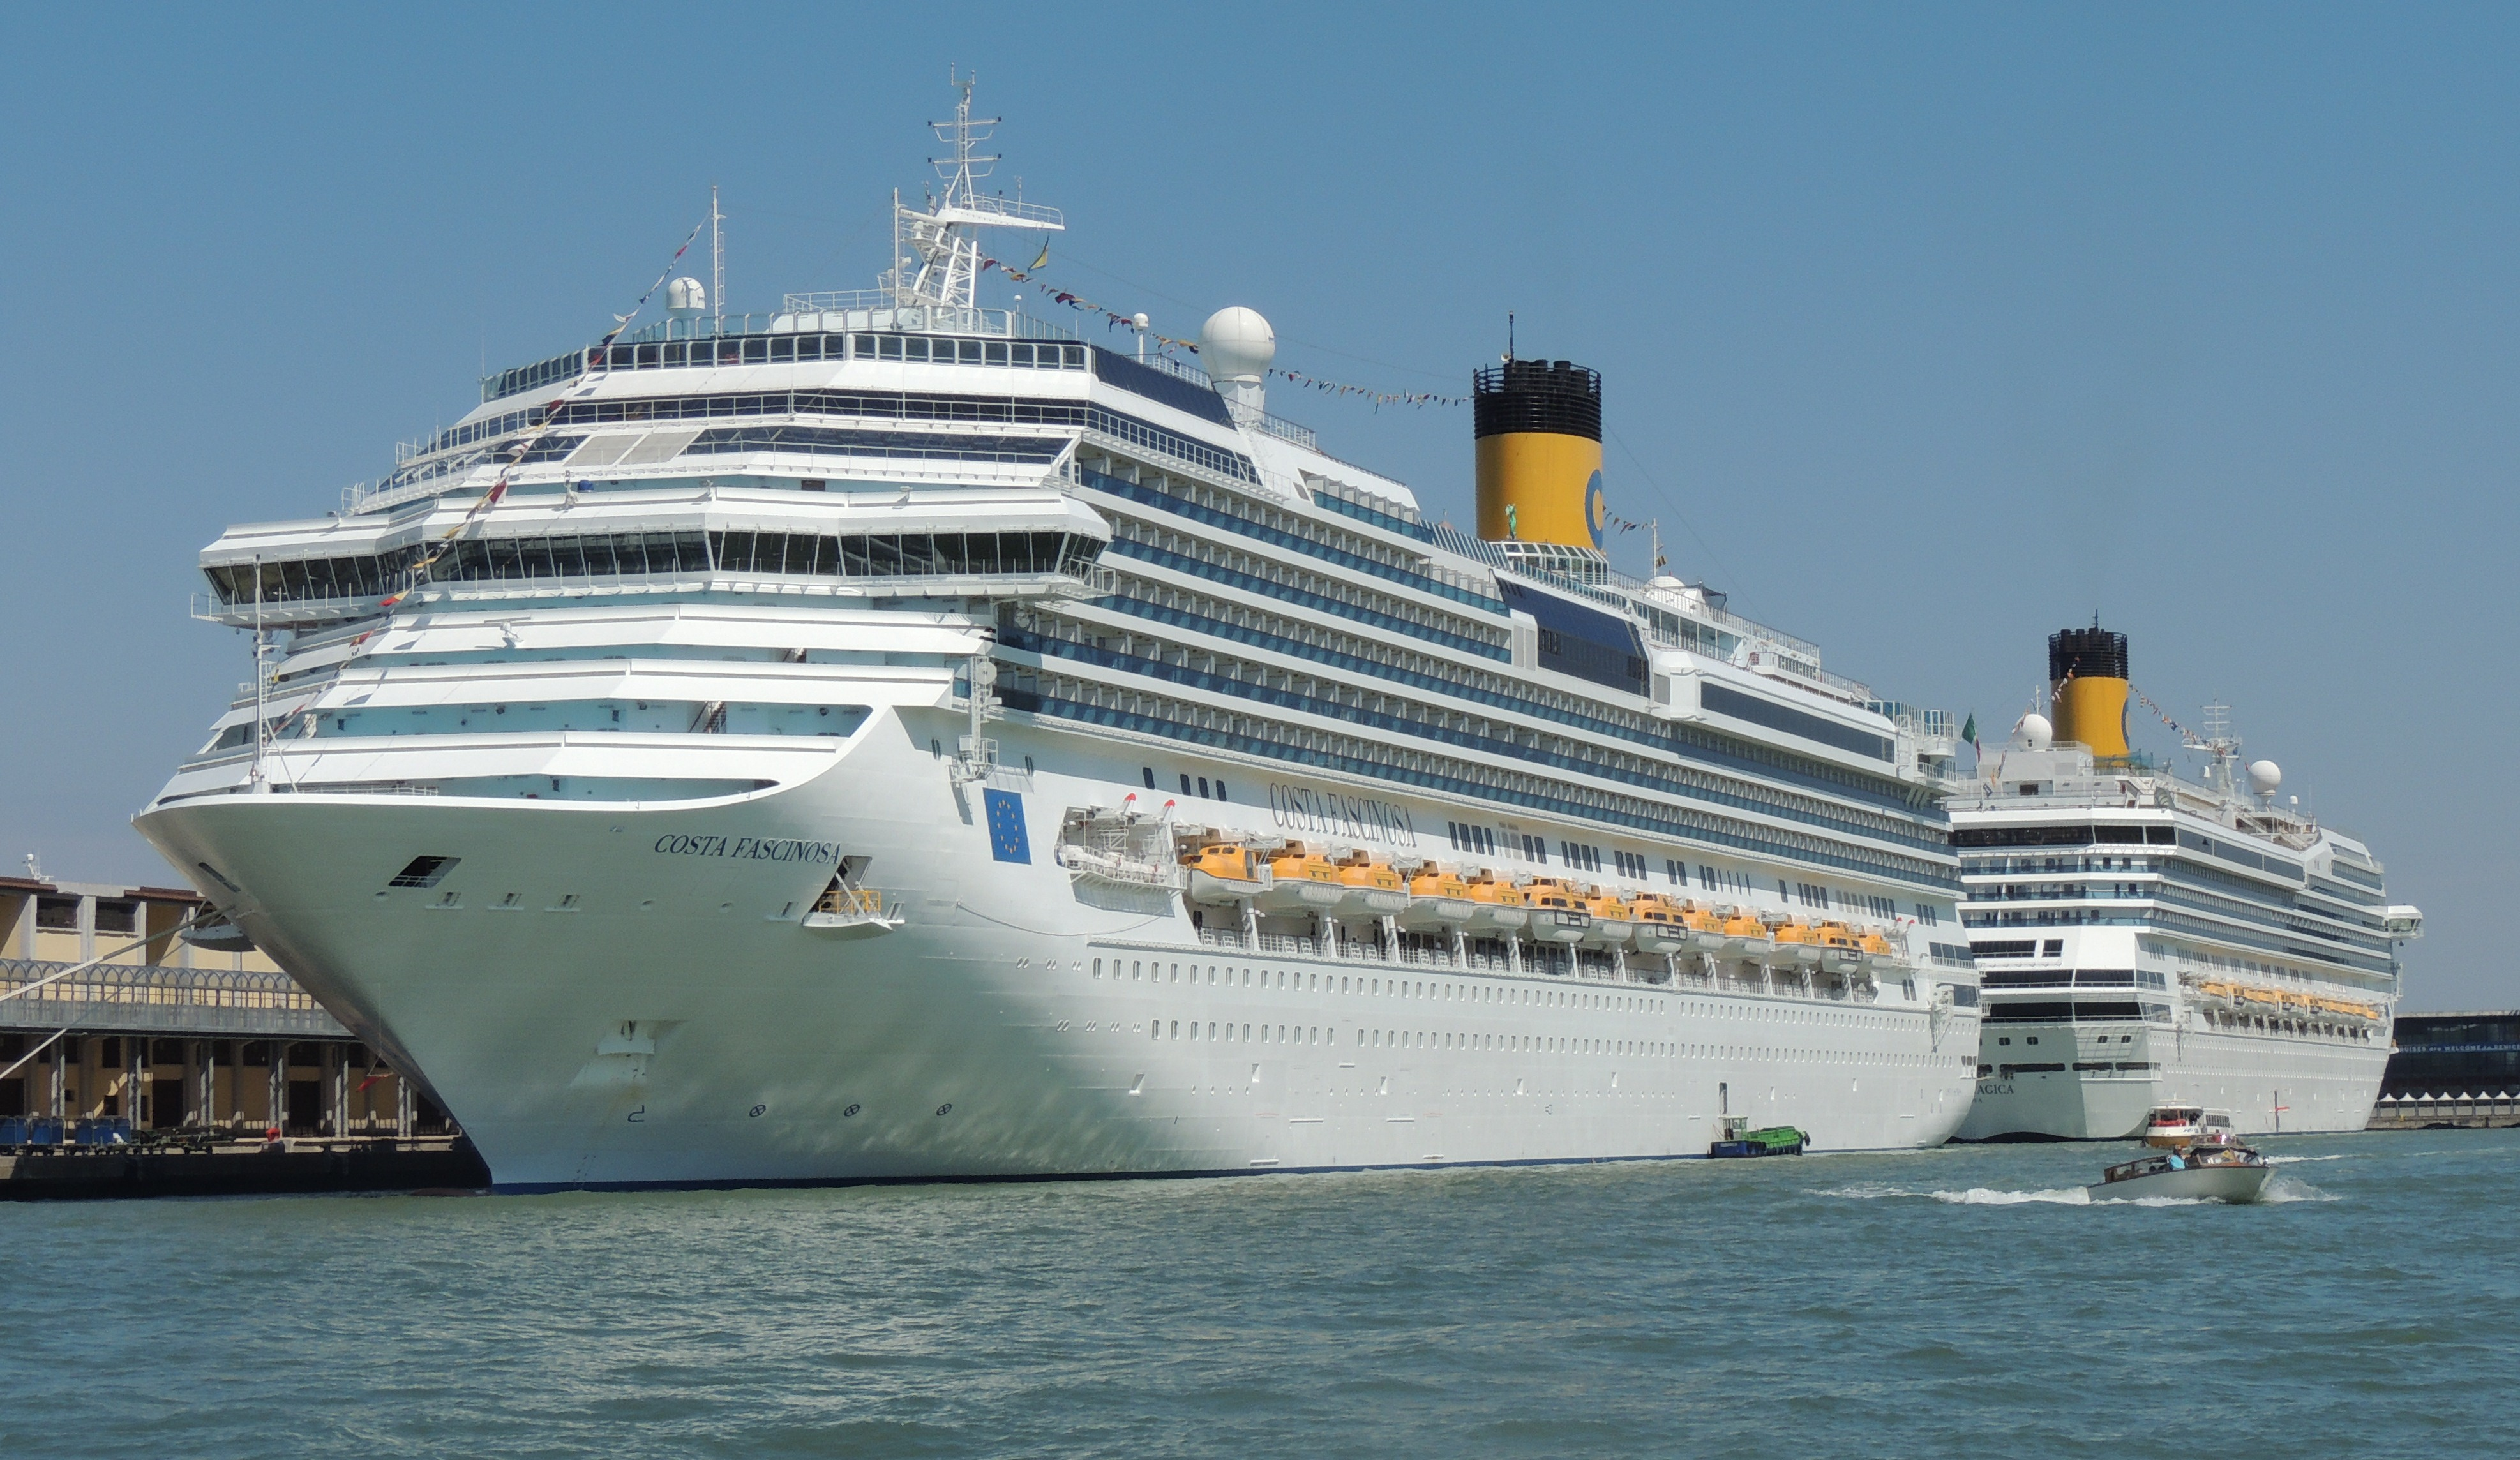 File:Costa Fascinosa and Costa Magica in Venice 2.jpg - Wikimedia ...